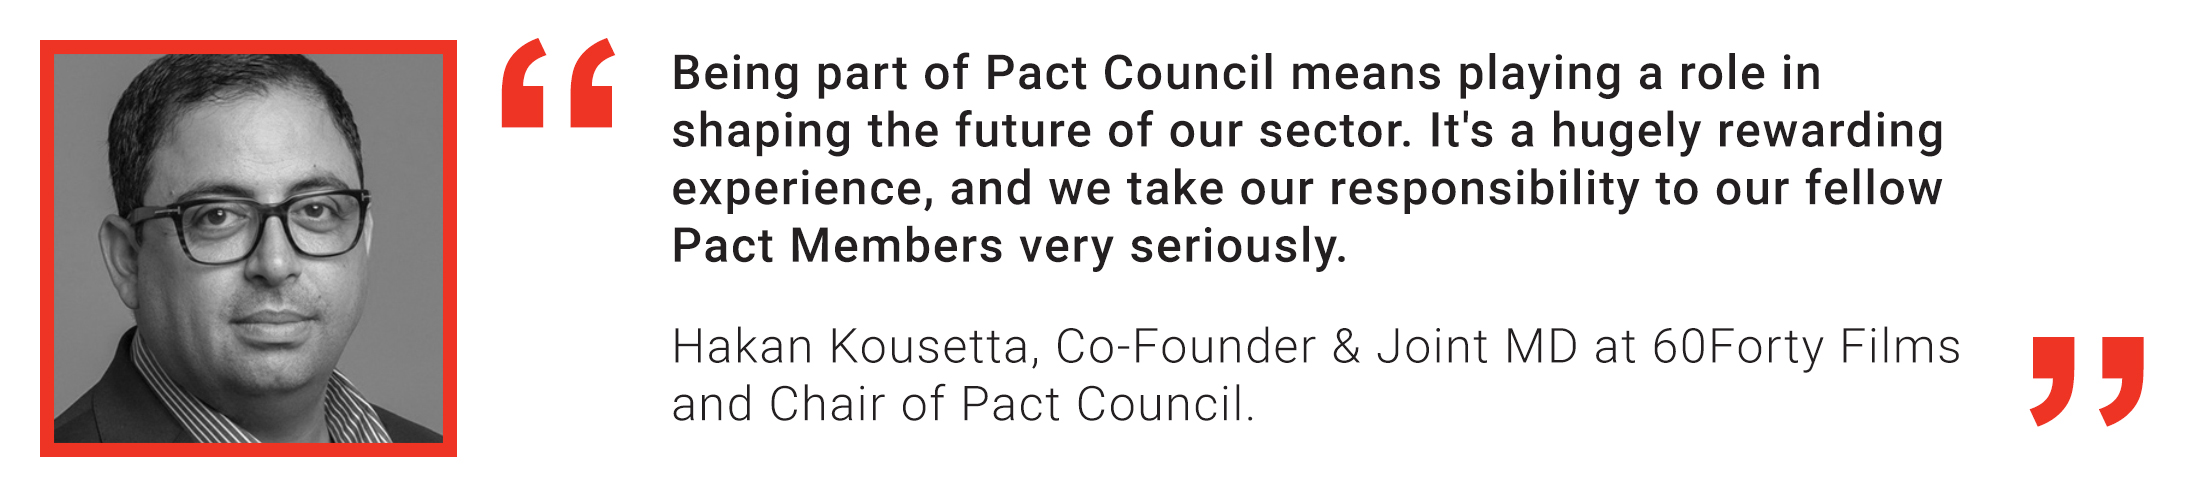 Quote from Hakan Kousetta, Chair of Pact Council: Being part of Pact Council means playing a role in shaping the future of our sector. It's a hugely rewarding experience.